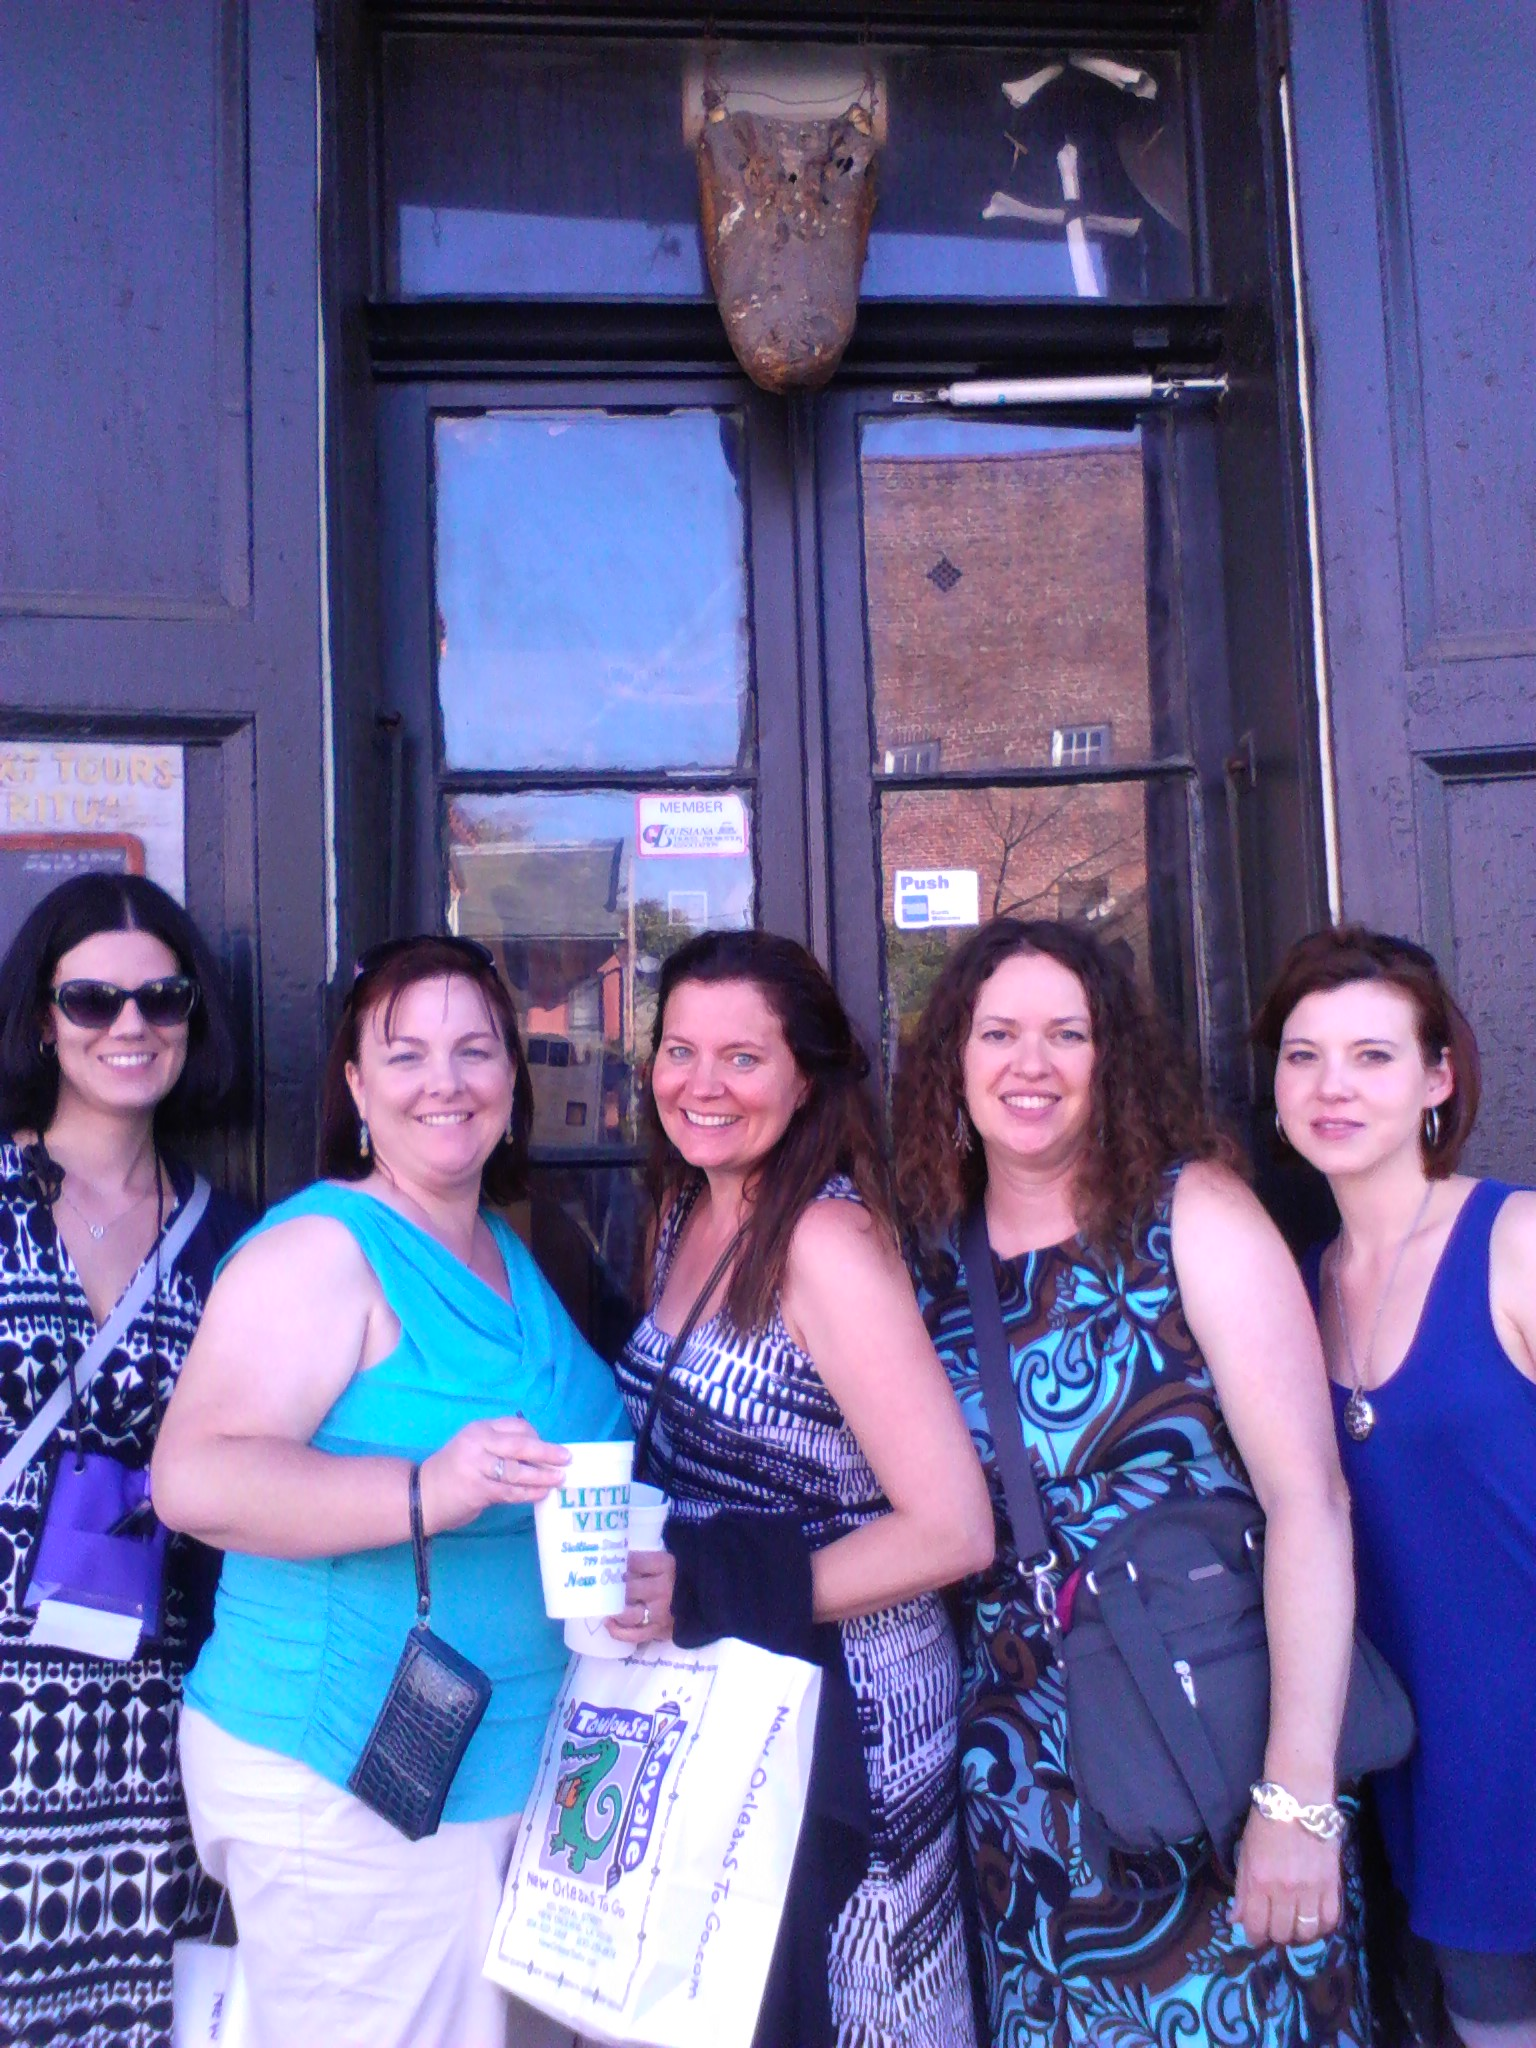 """Venturing into an """"authentic"""" voodoo museum: Sue Lyndon, Tish Beaty, Dawn Cosby, Lisa Medley and Amanda Buxton."""